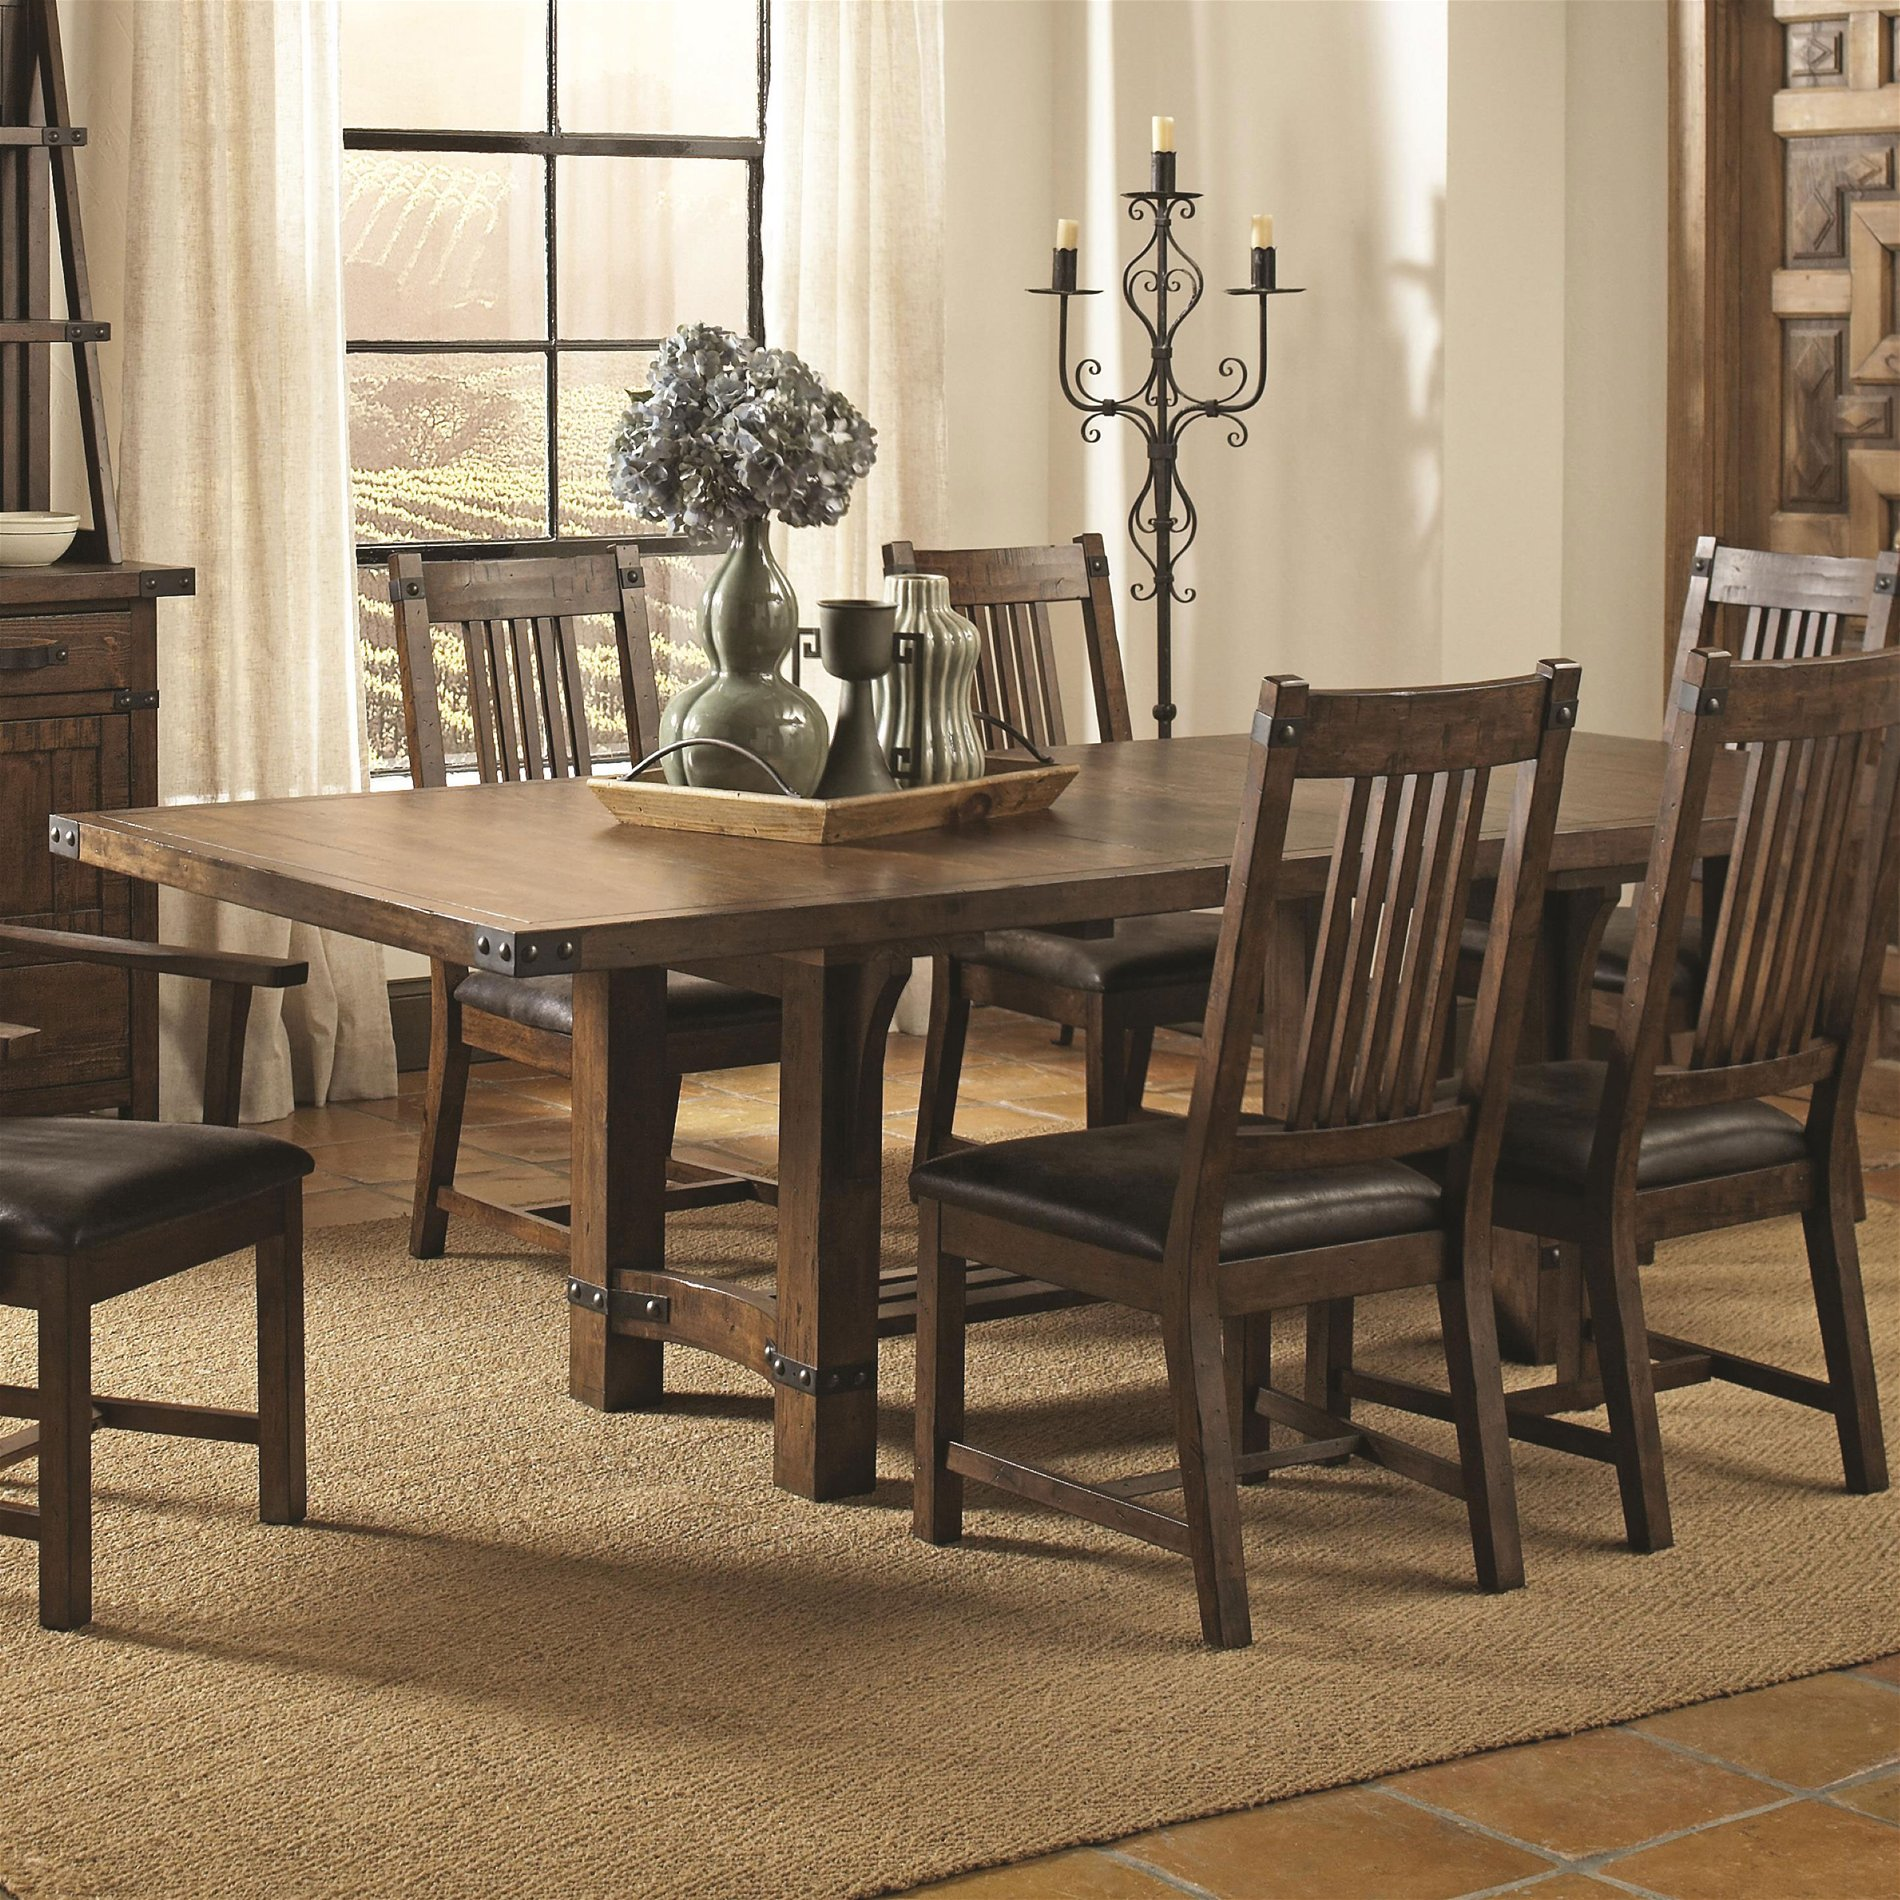 Coaster Home 105701 Padima Rustic Rough-Sawn Dining Table